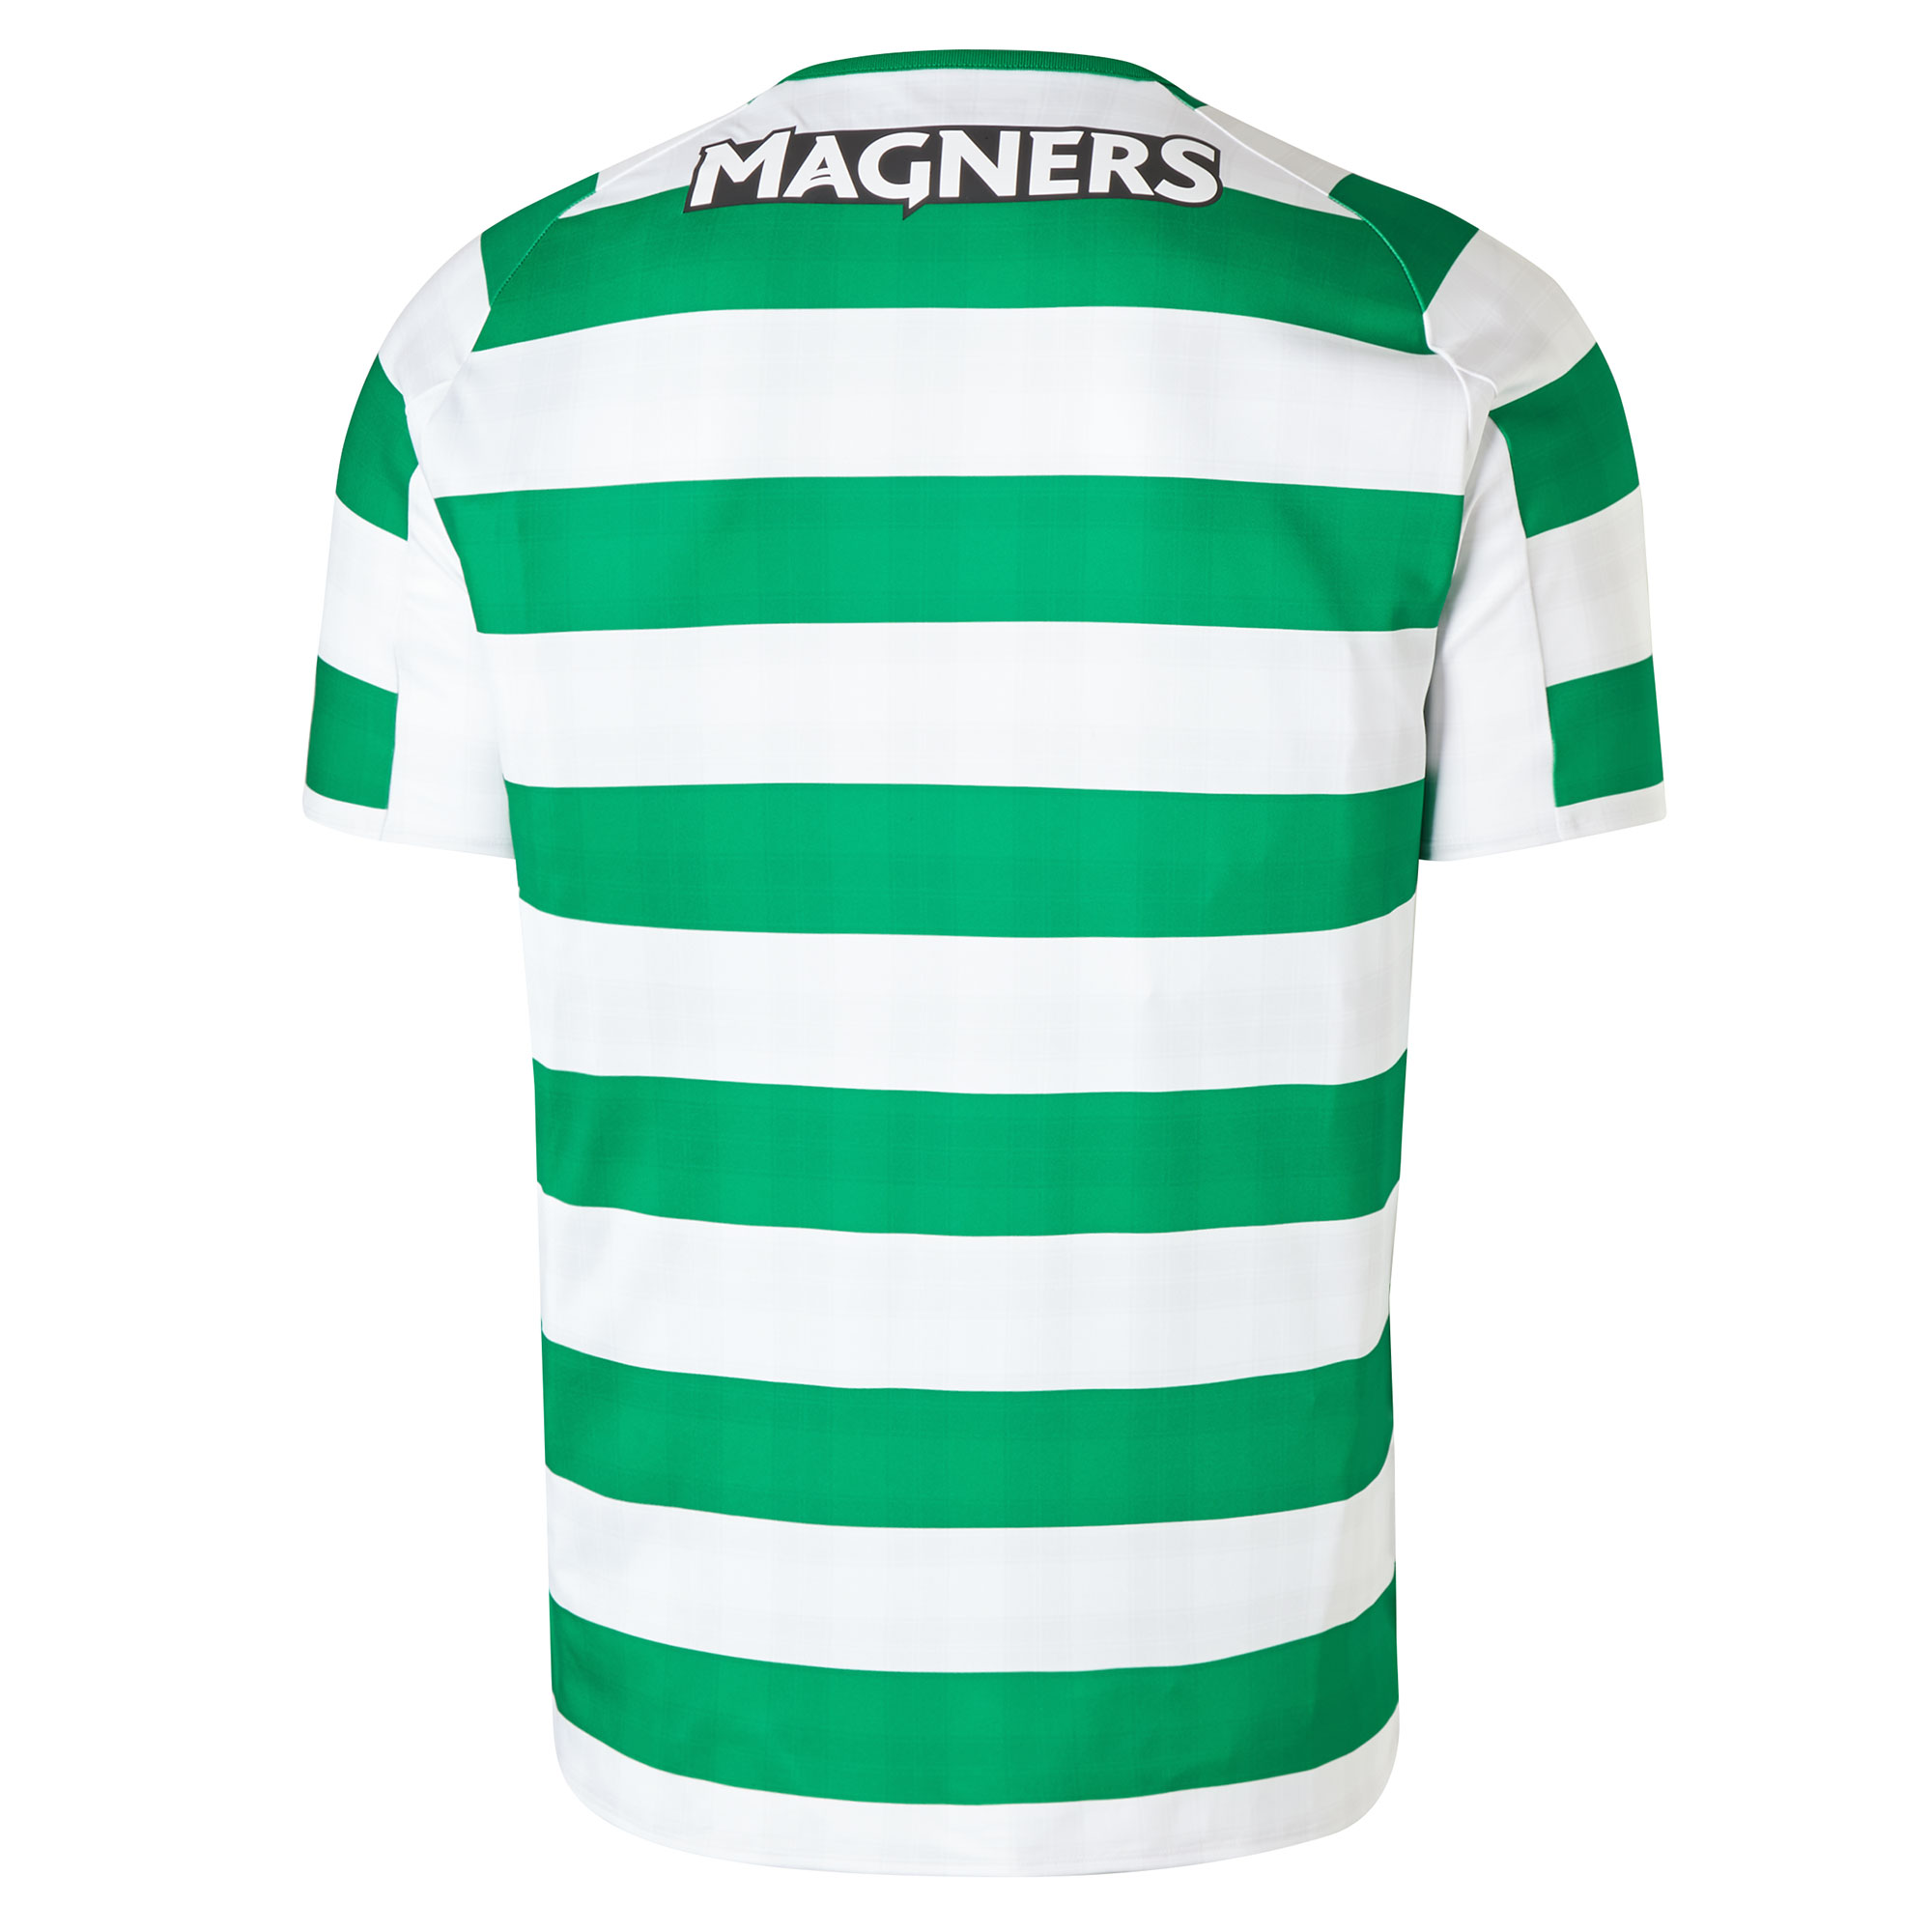 3b3450eb9 ... New Balance Third Kit · Click to enlarge image  celtic 18 19 new balance home kit a.jpg · Click to enlarge image  celtic 18 19 new balance home kit b.jpg ...